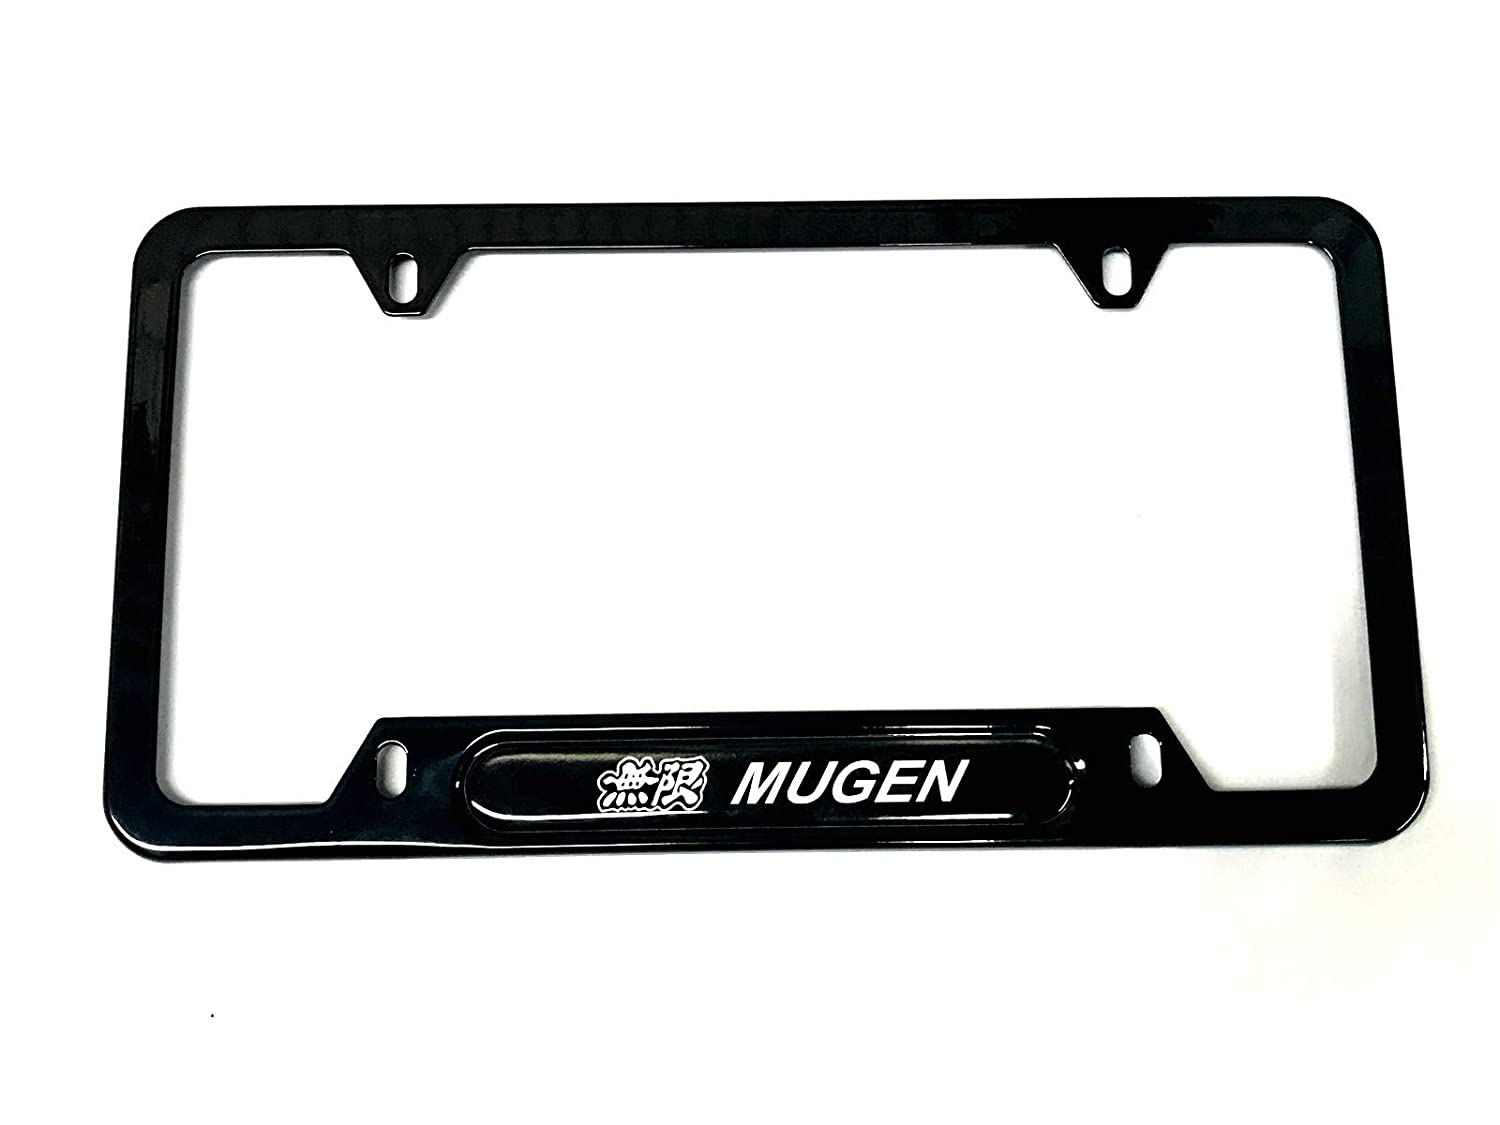 1 Black Auteal Car Stainless Steel Metal Mugen JDM License Plate Tag Frame Cover Holders w//Caps Screws for Civic